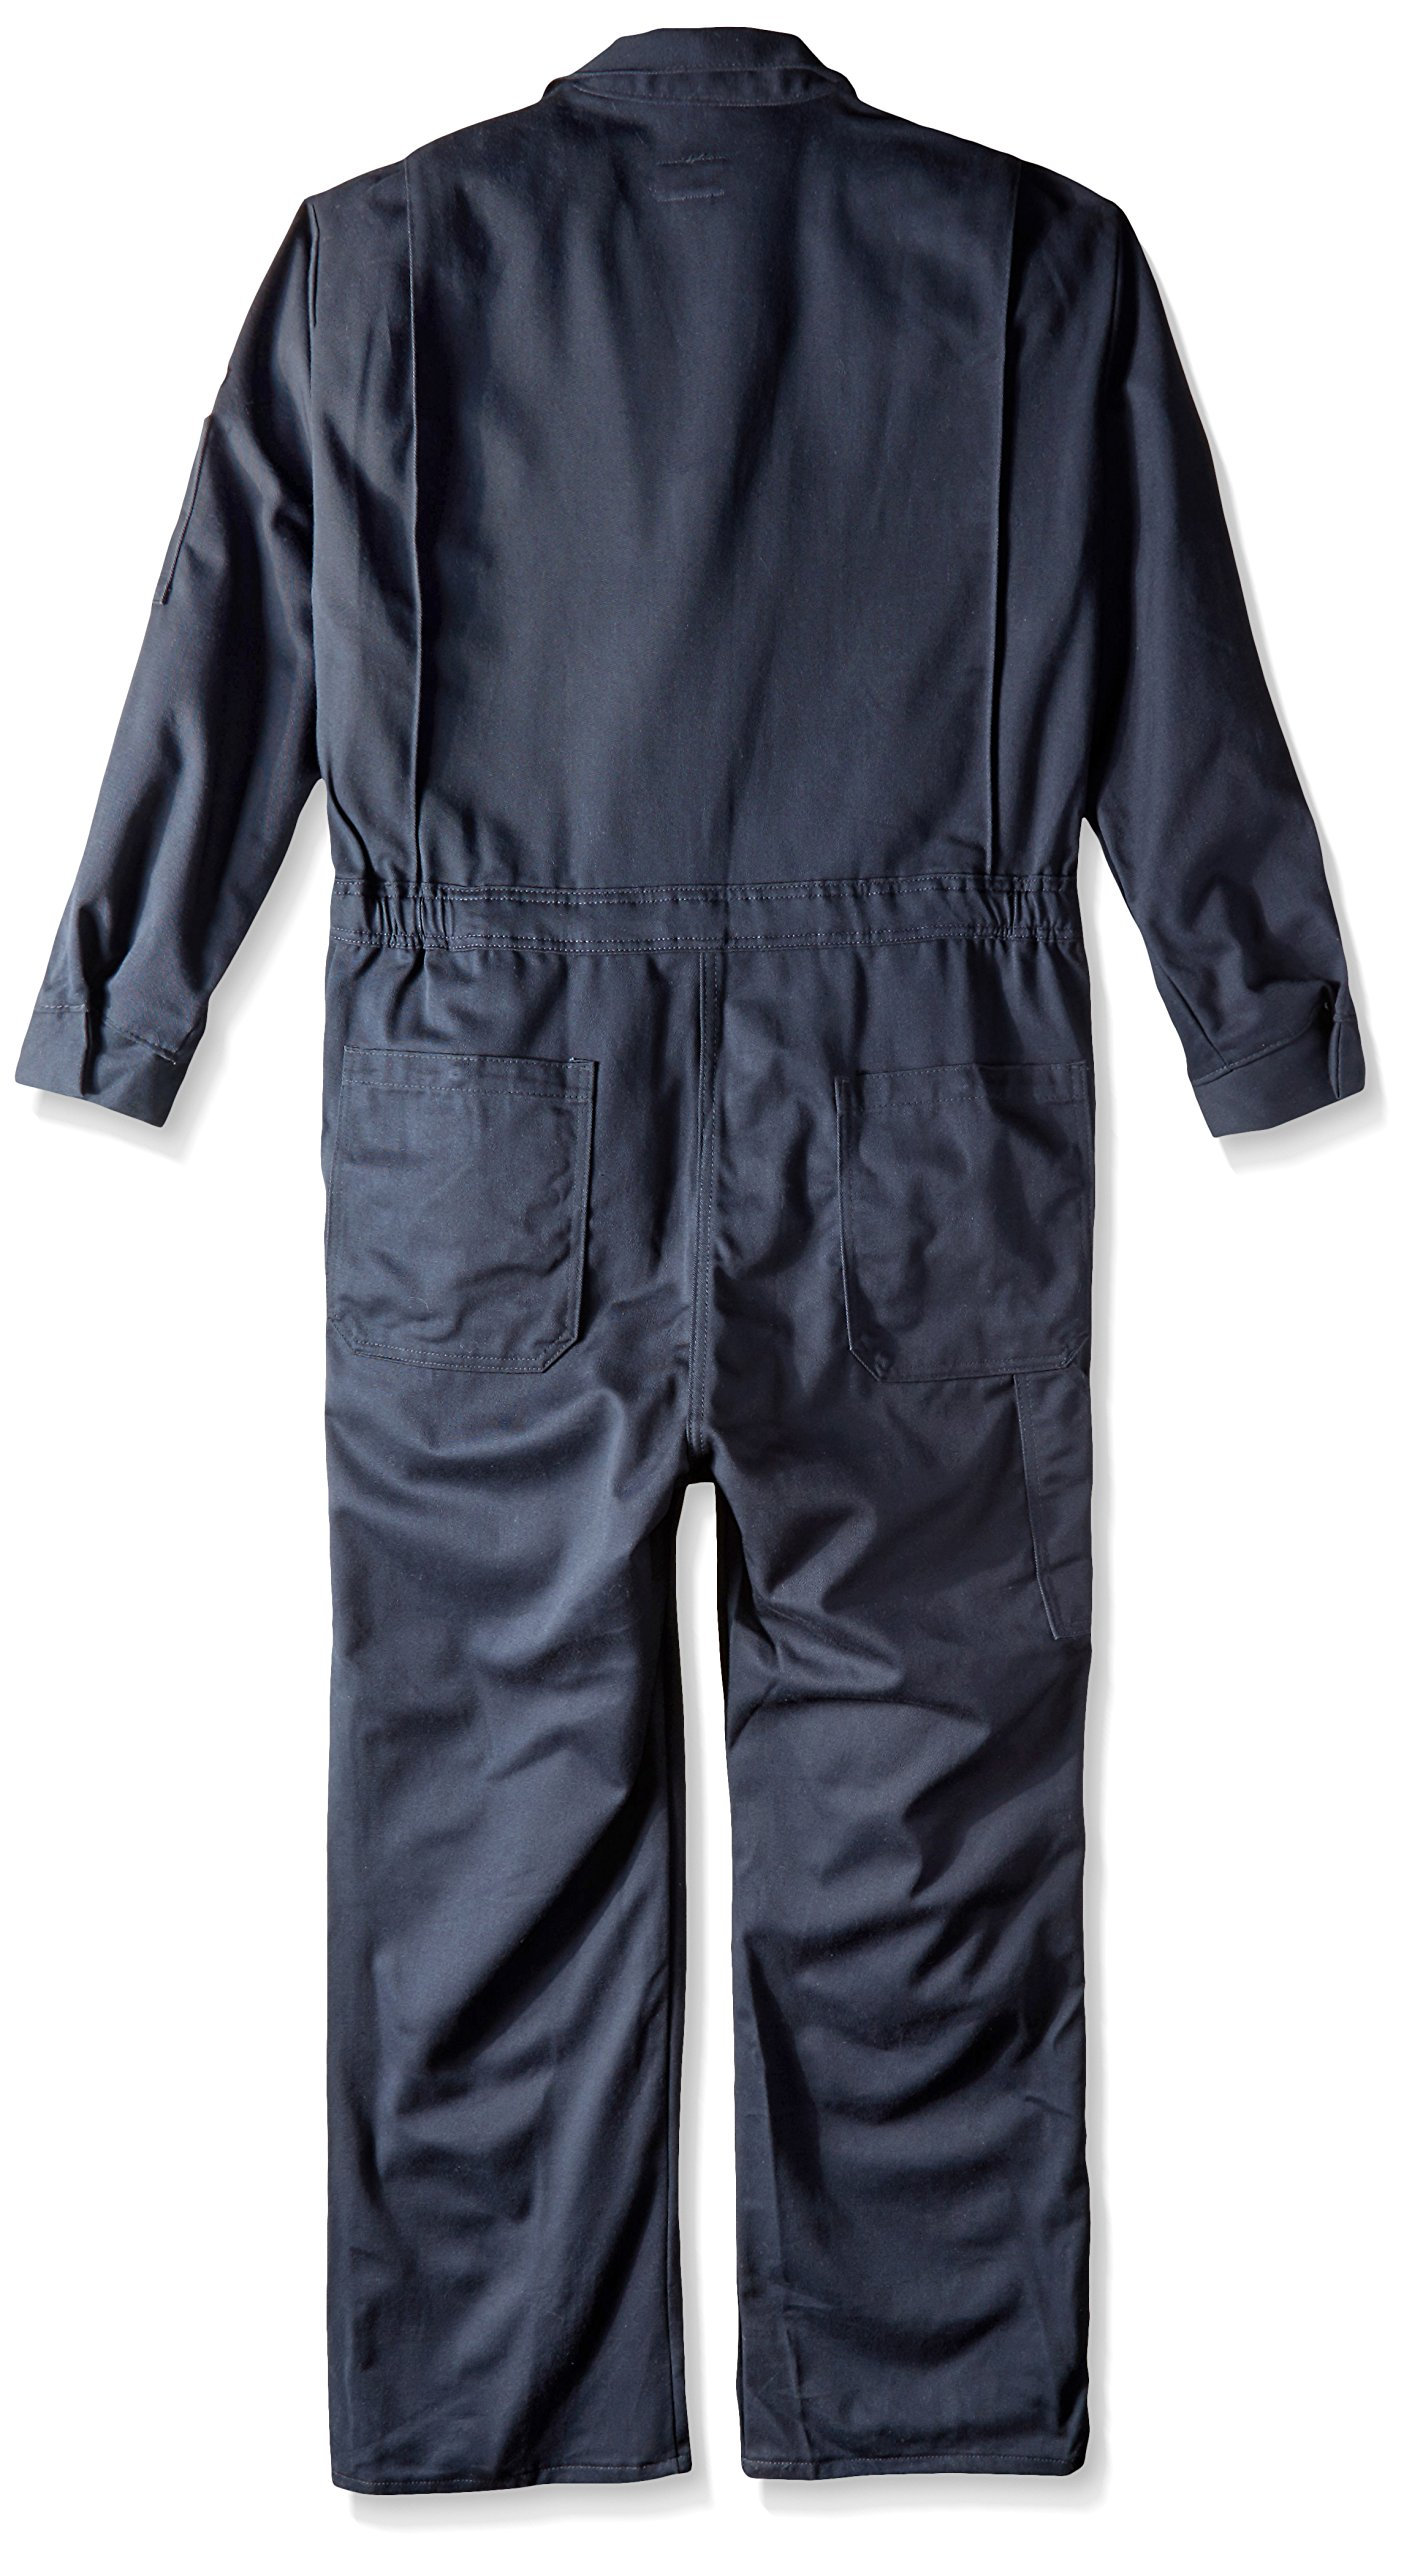 Bulwark Men's Flame Resistant 4.5 oz Nomex IIIA Classic Coverall with Hemmed Sleeves, Navy 52 Long by Bulwark FR (Image #2)